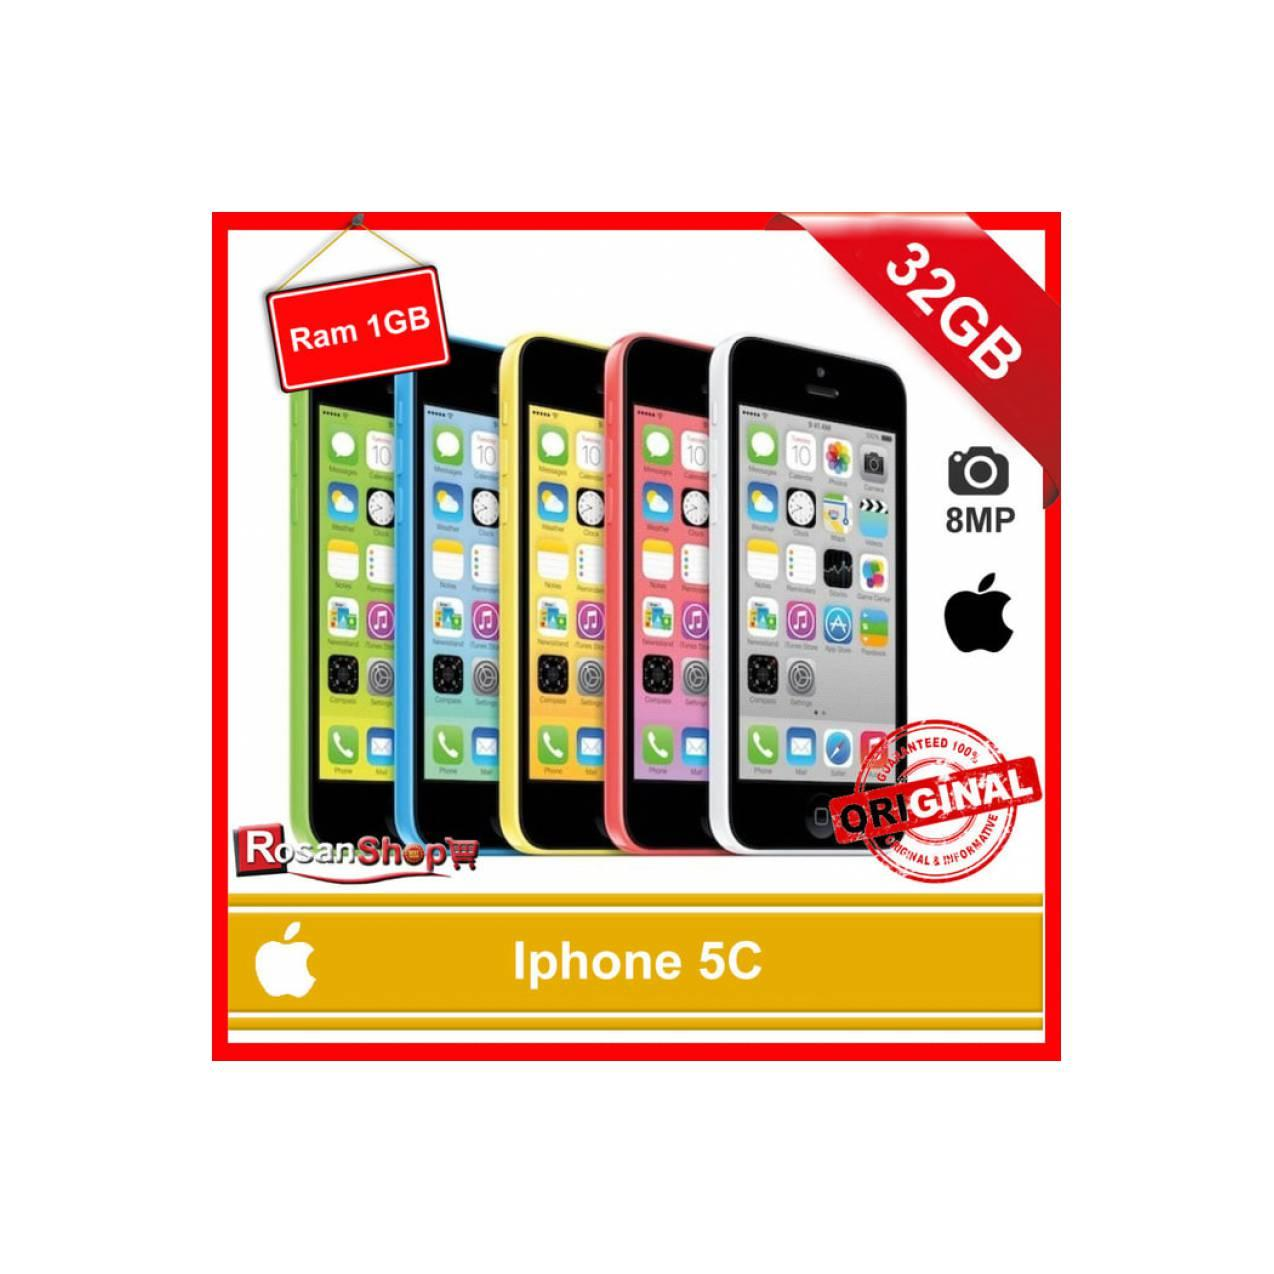 IPHONE 5C 32Gb Ram 1Gb 8MP Garansi 1thn Original Apple